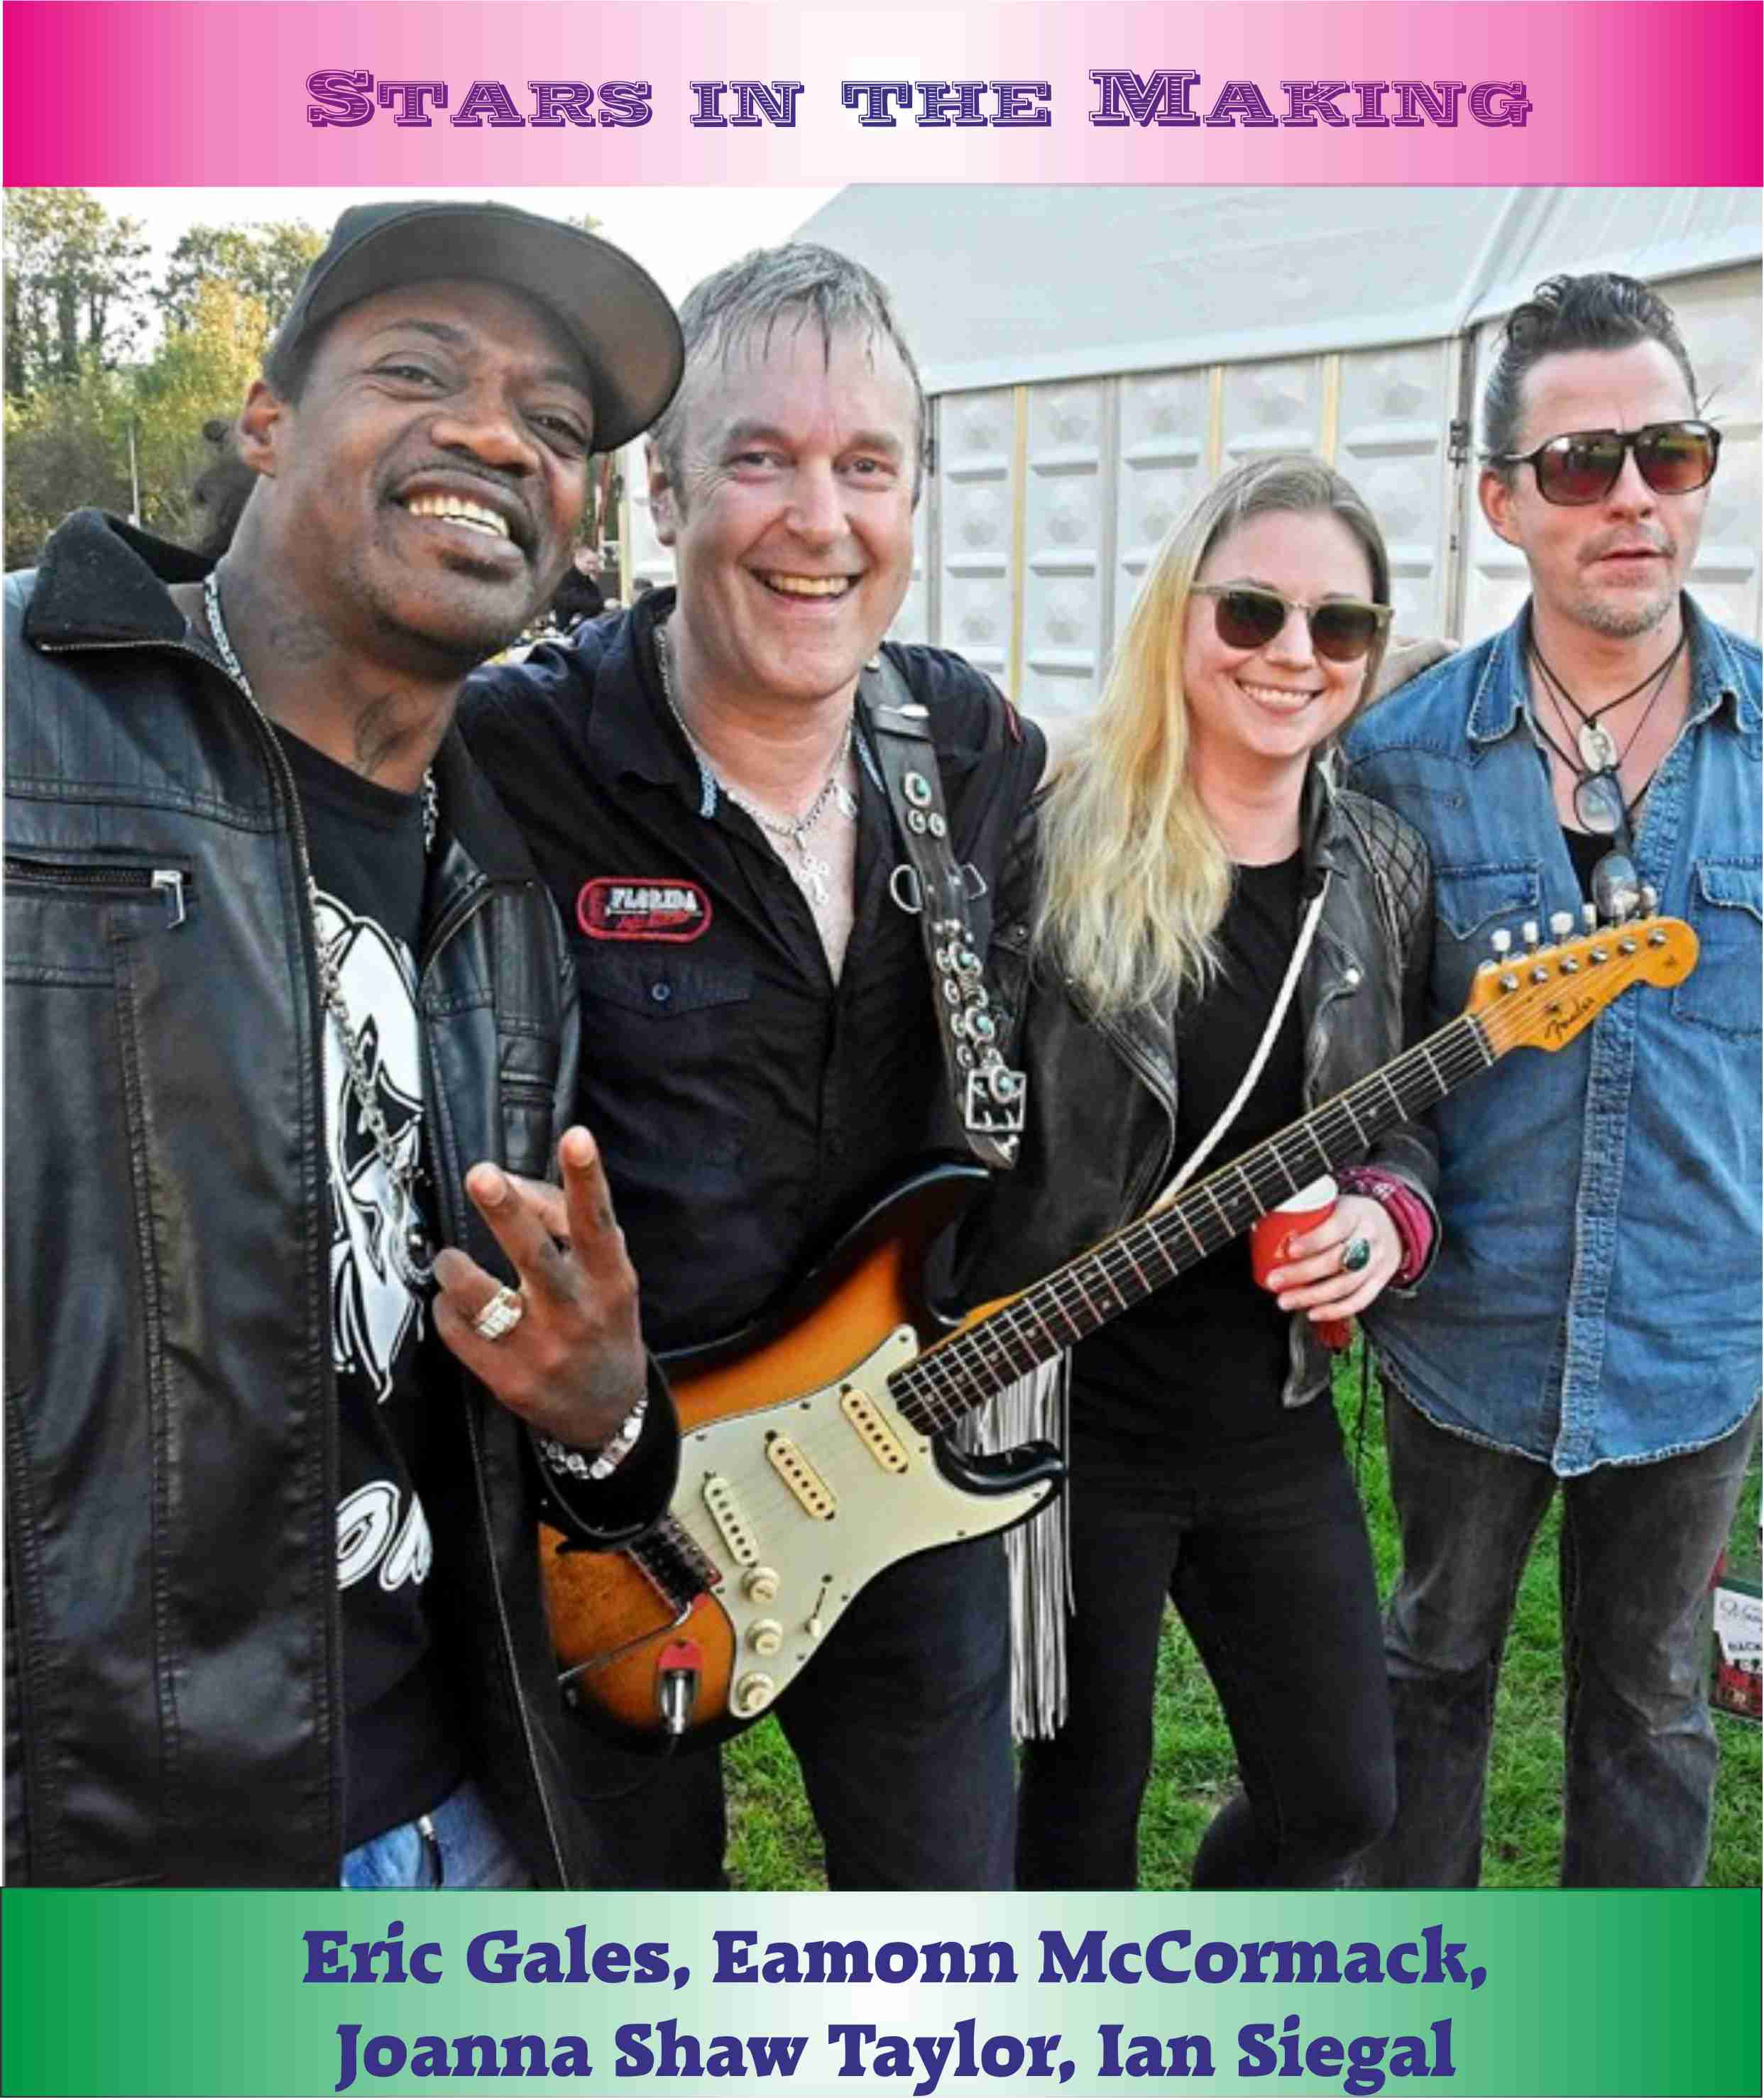 Blues is the new Black. Guitar heroes. Eric Gales, eamonn McCormack, Joanna Shaw Taylor, Ian Siegal